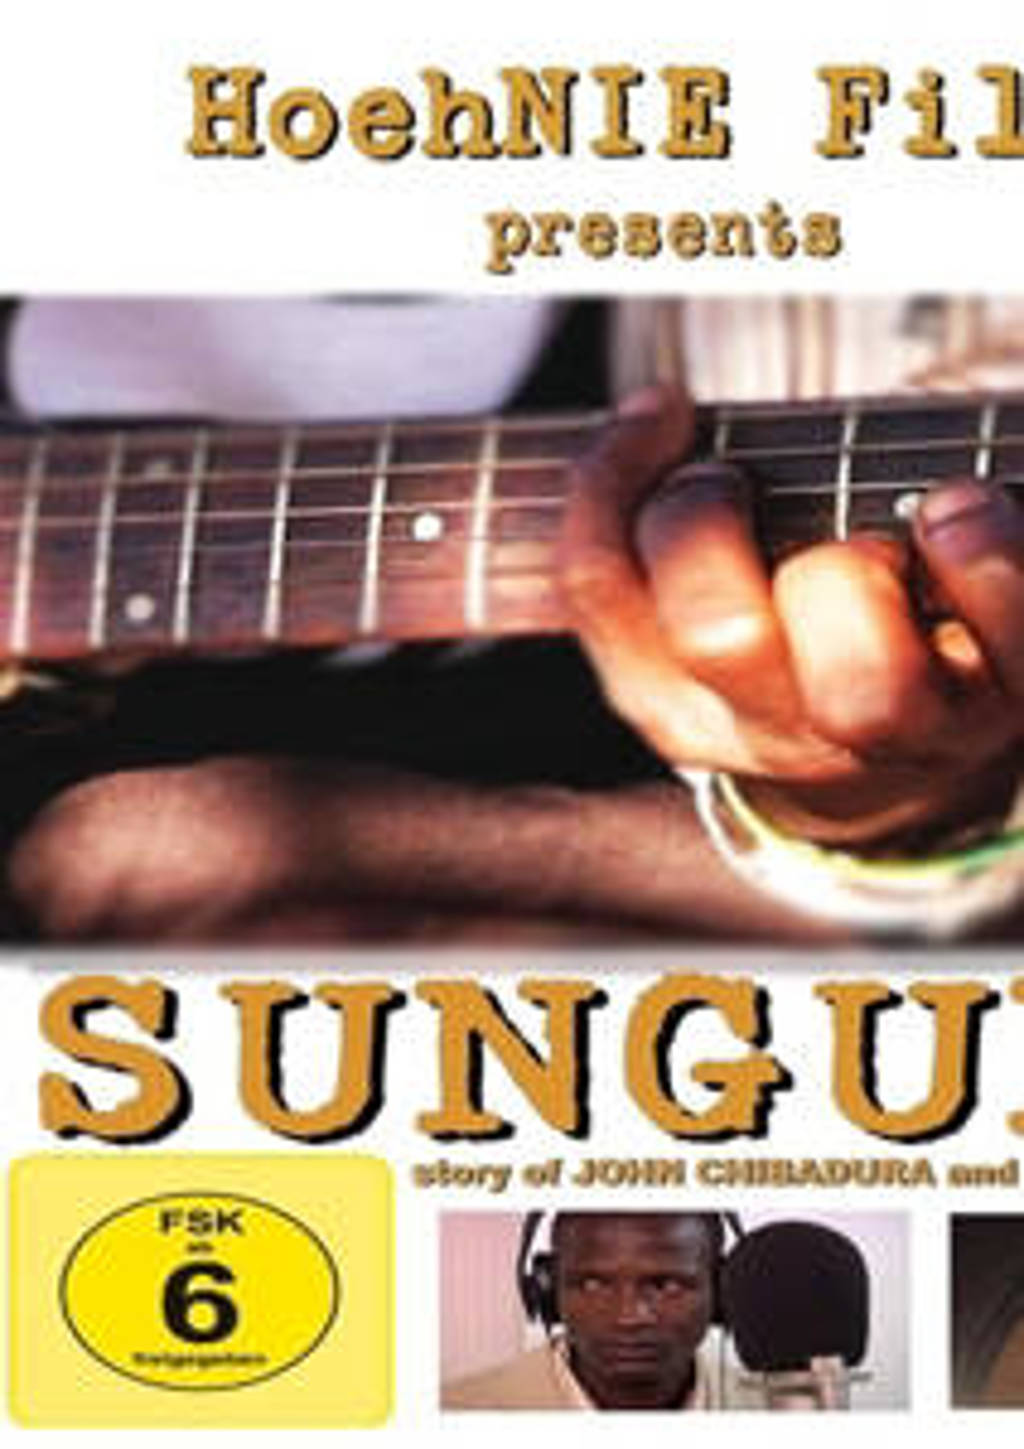 Andreas Hohn - Sungura-Story Of John Chibadura And (DVD)